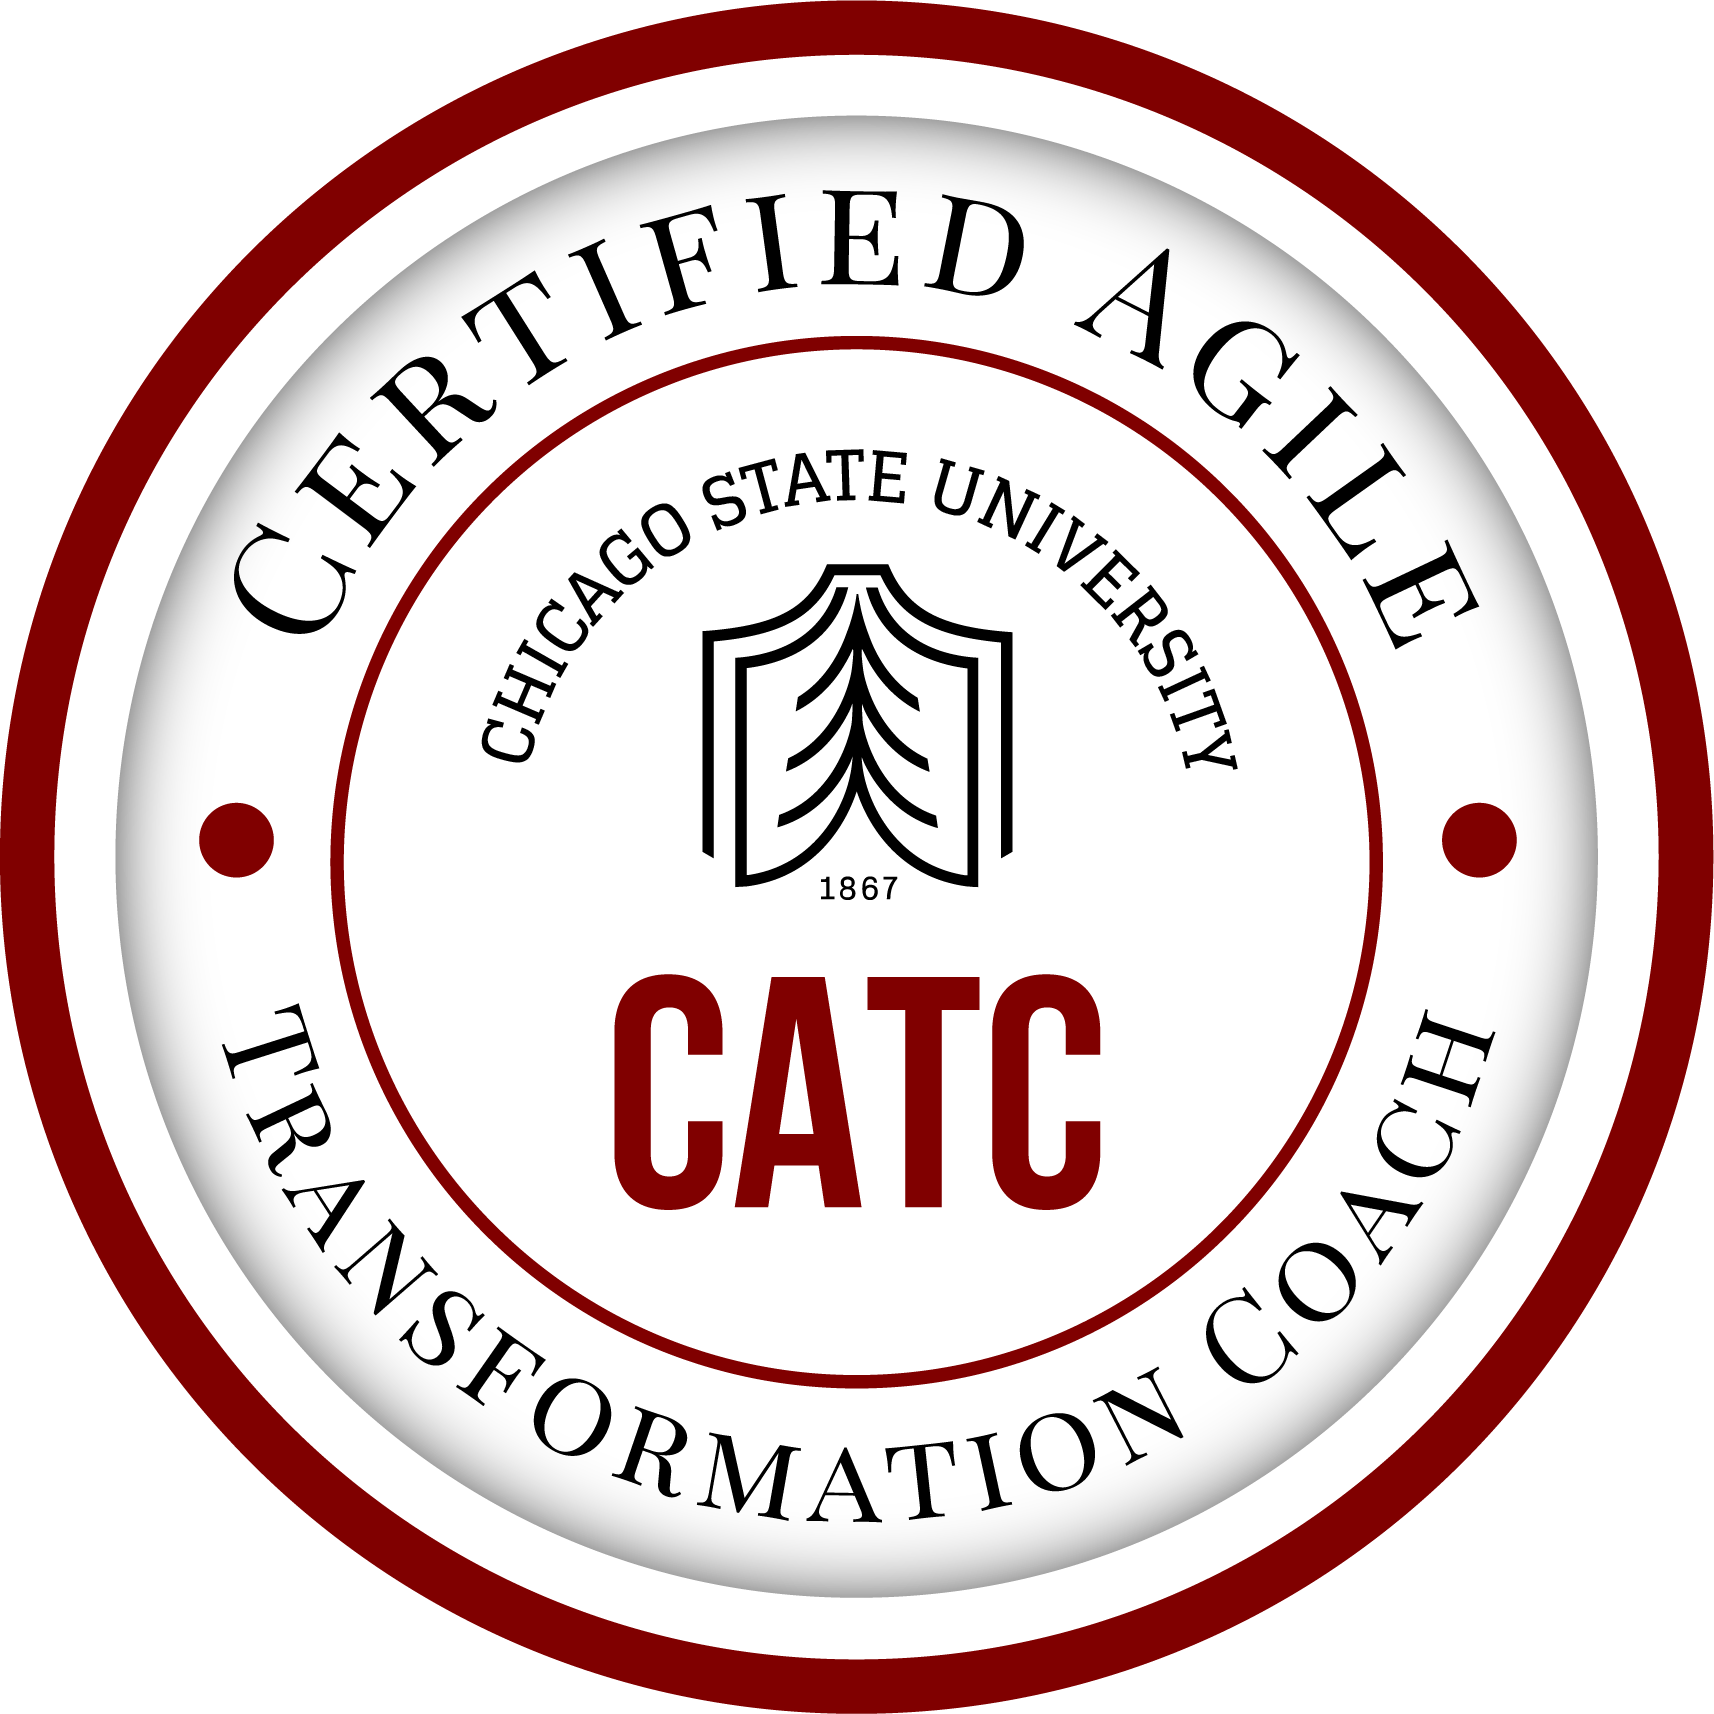 Certified Agile Transformation Coach (CATC) from Chicago State University